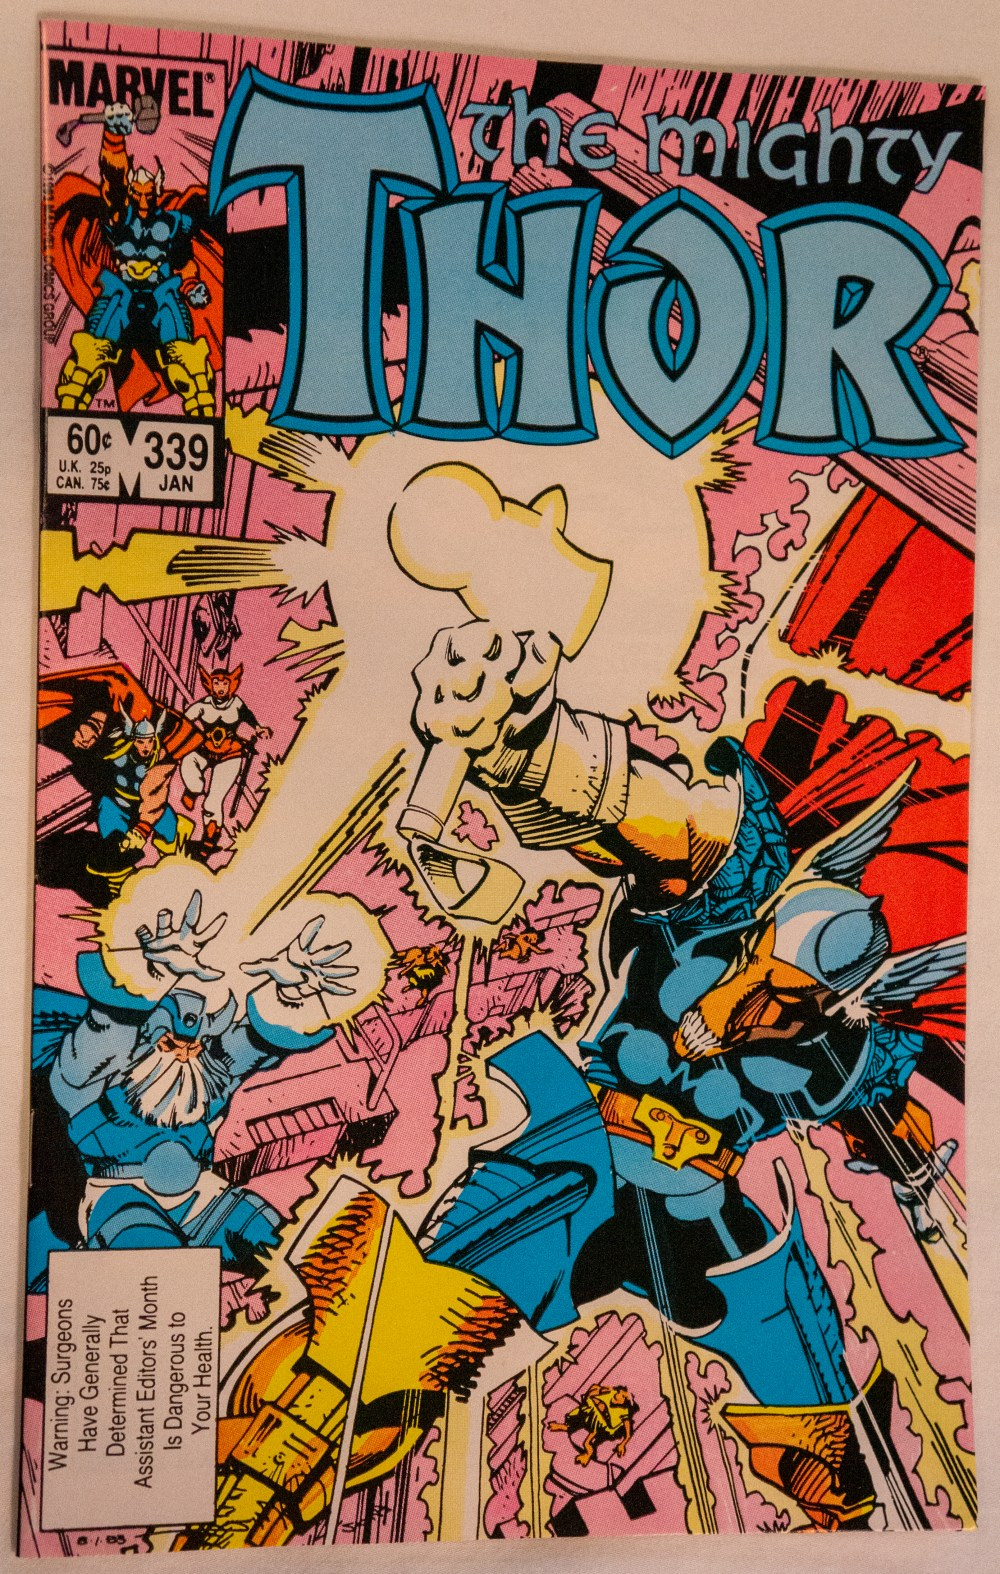 The Mighty Thor #339